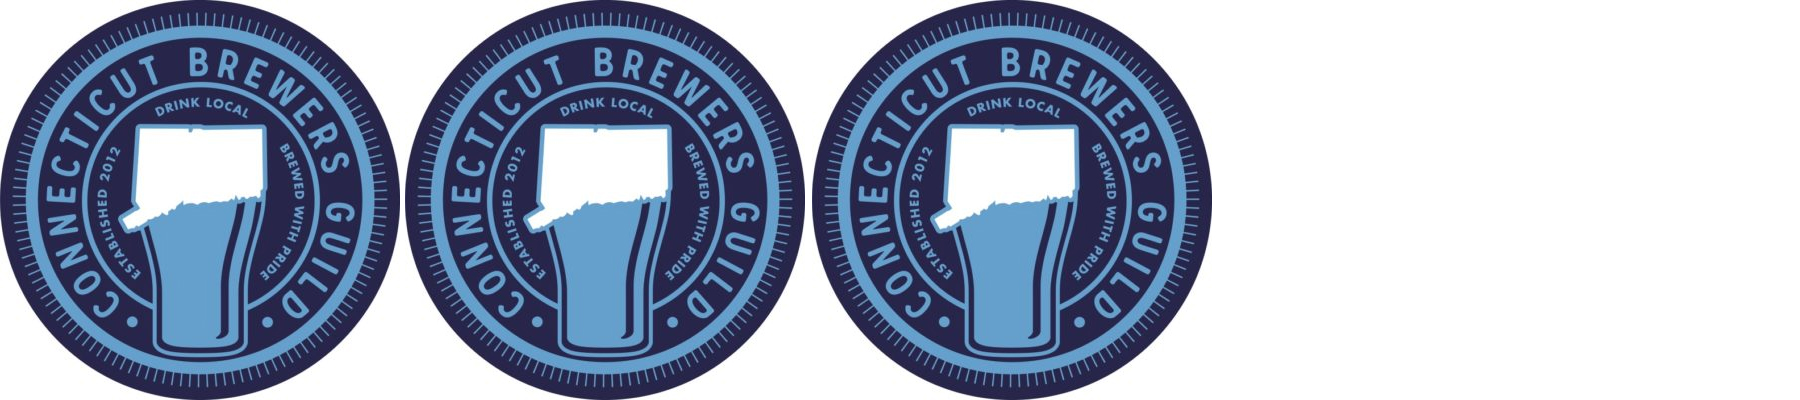 Craft brewers deserve access to affordable health care